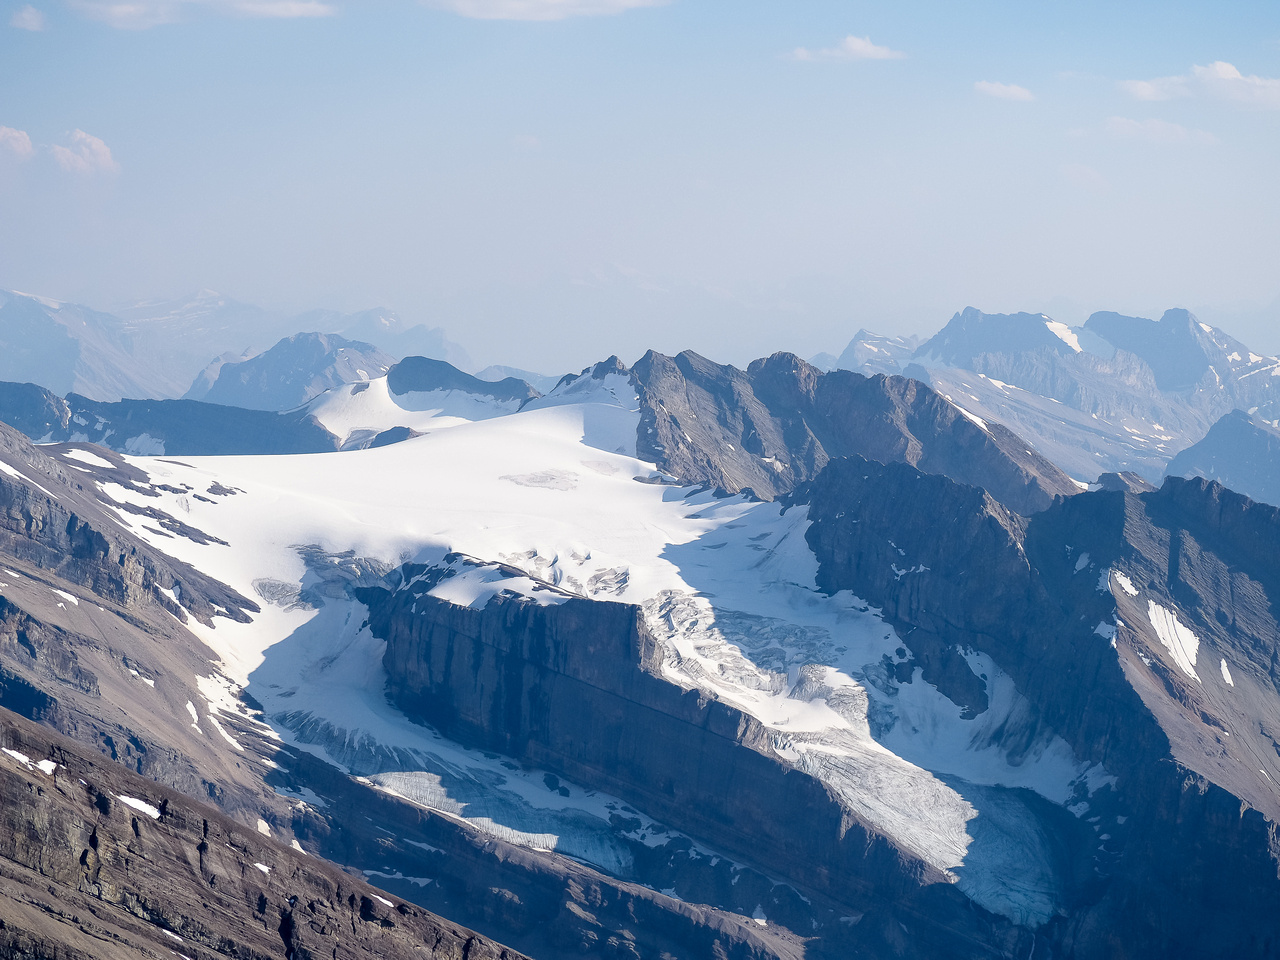 The Drummond Icefield.